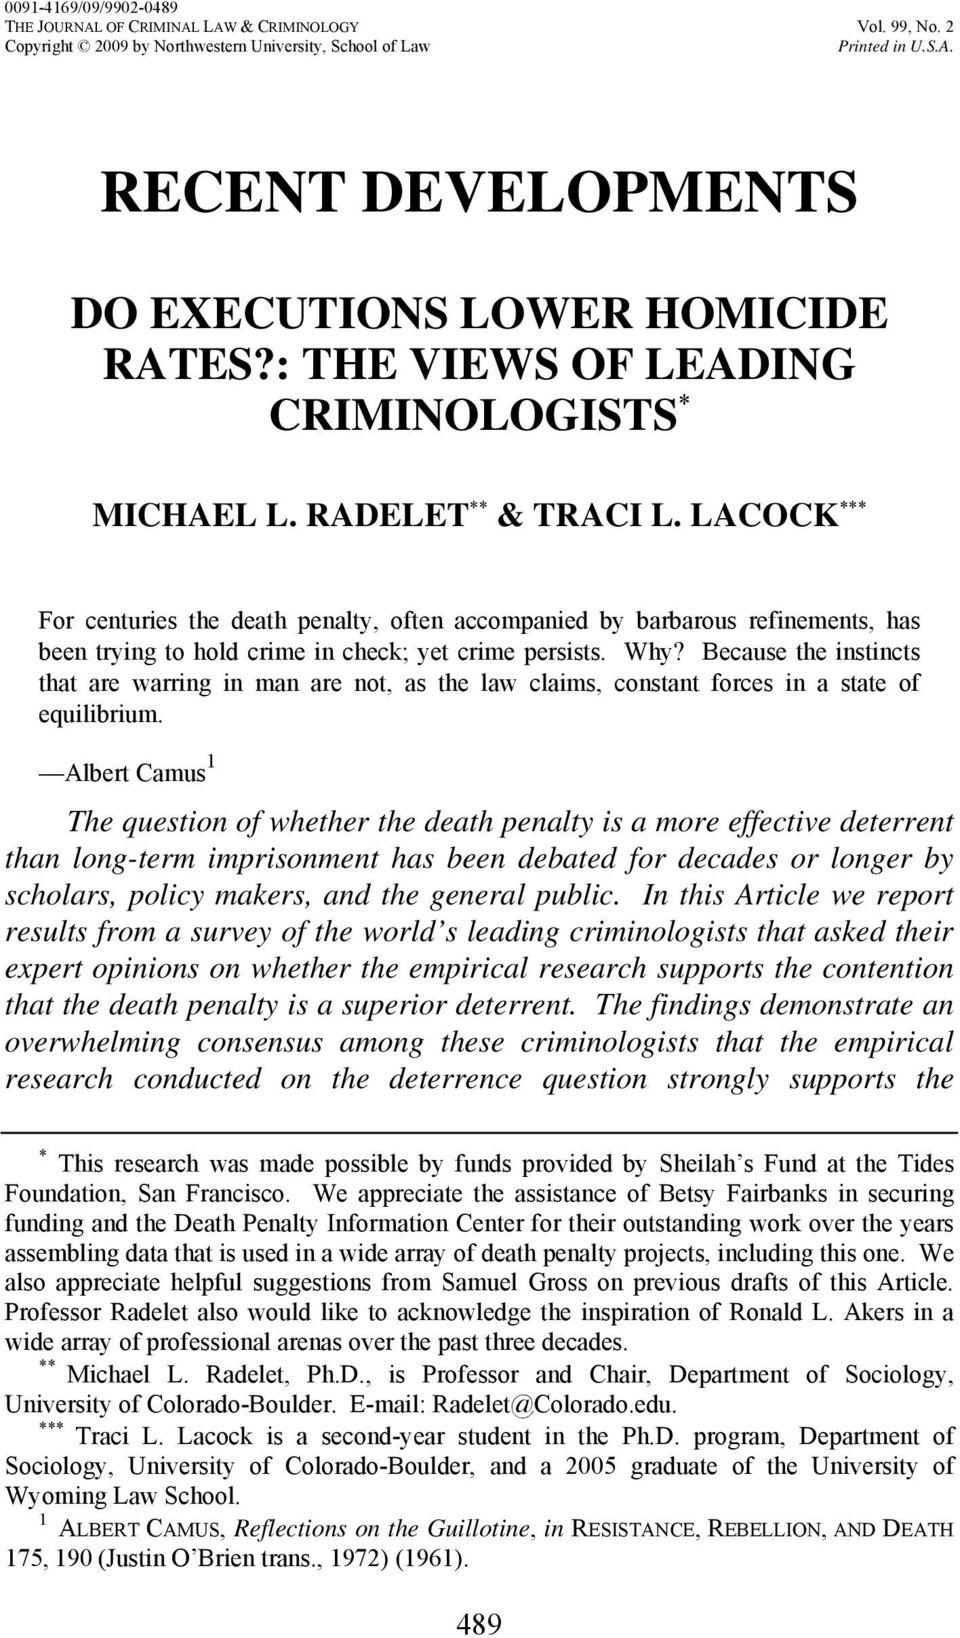 LACOCK *** For centuries the death penalty, often accompanied by barbarous refinements, has been trying to hold crime in check; yet crime persists. Why?